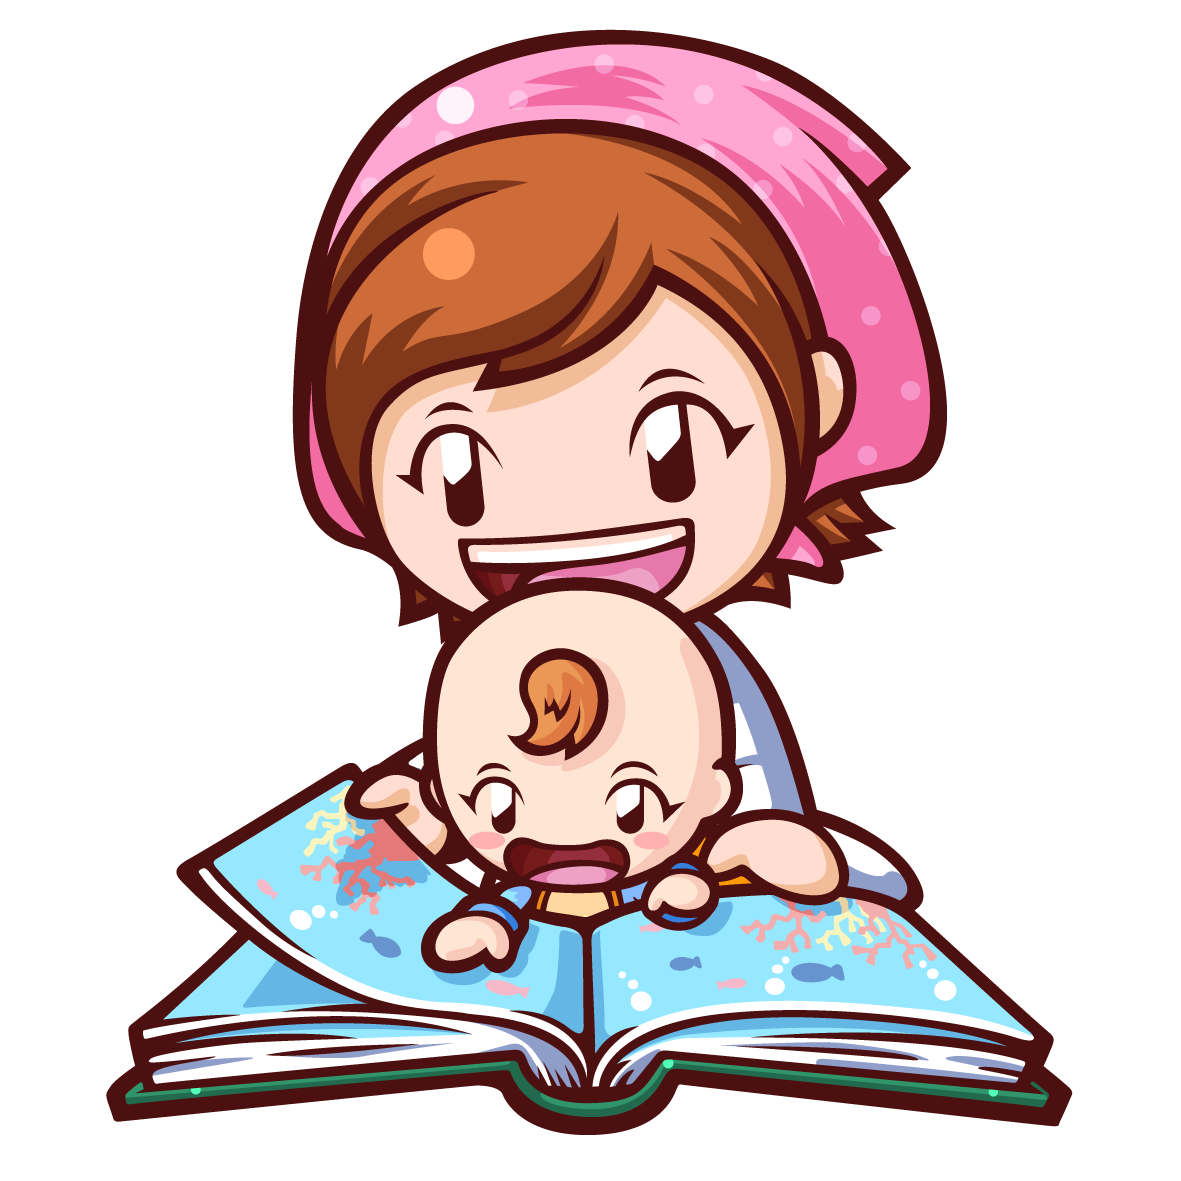 Babysitting Clipart - Clipart Kid